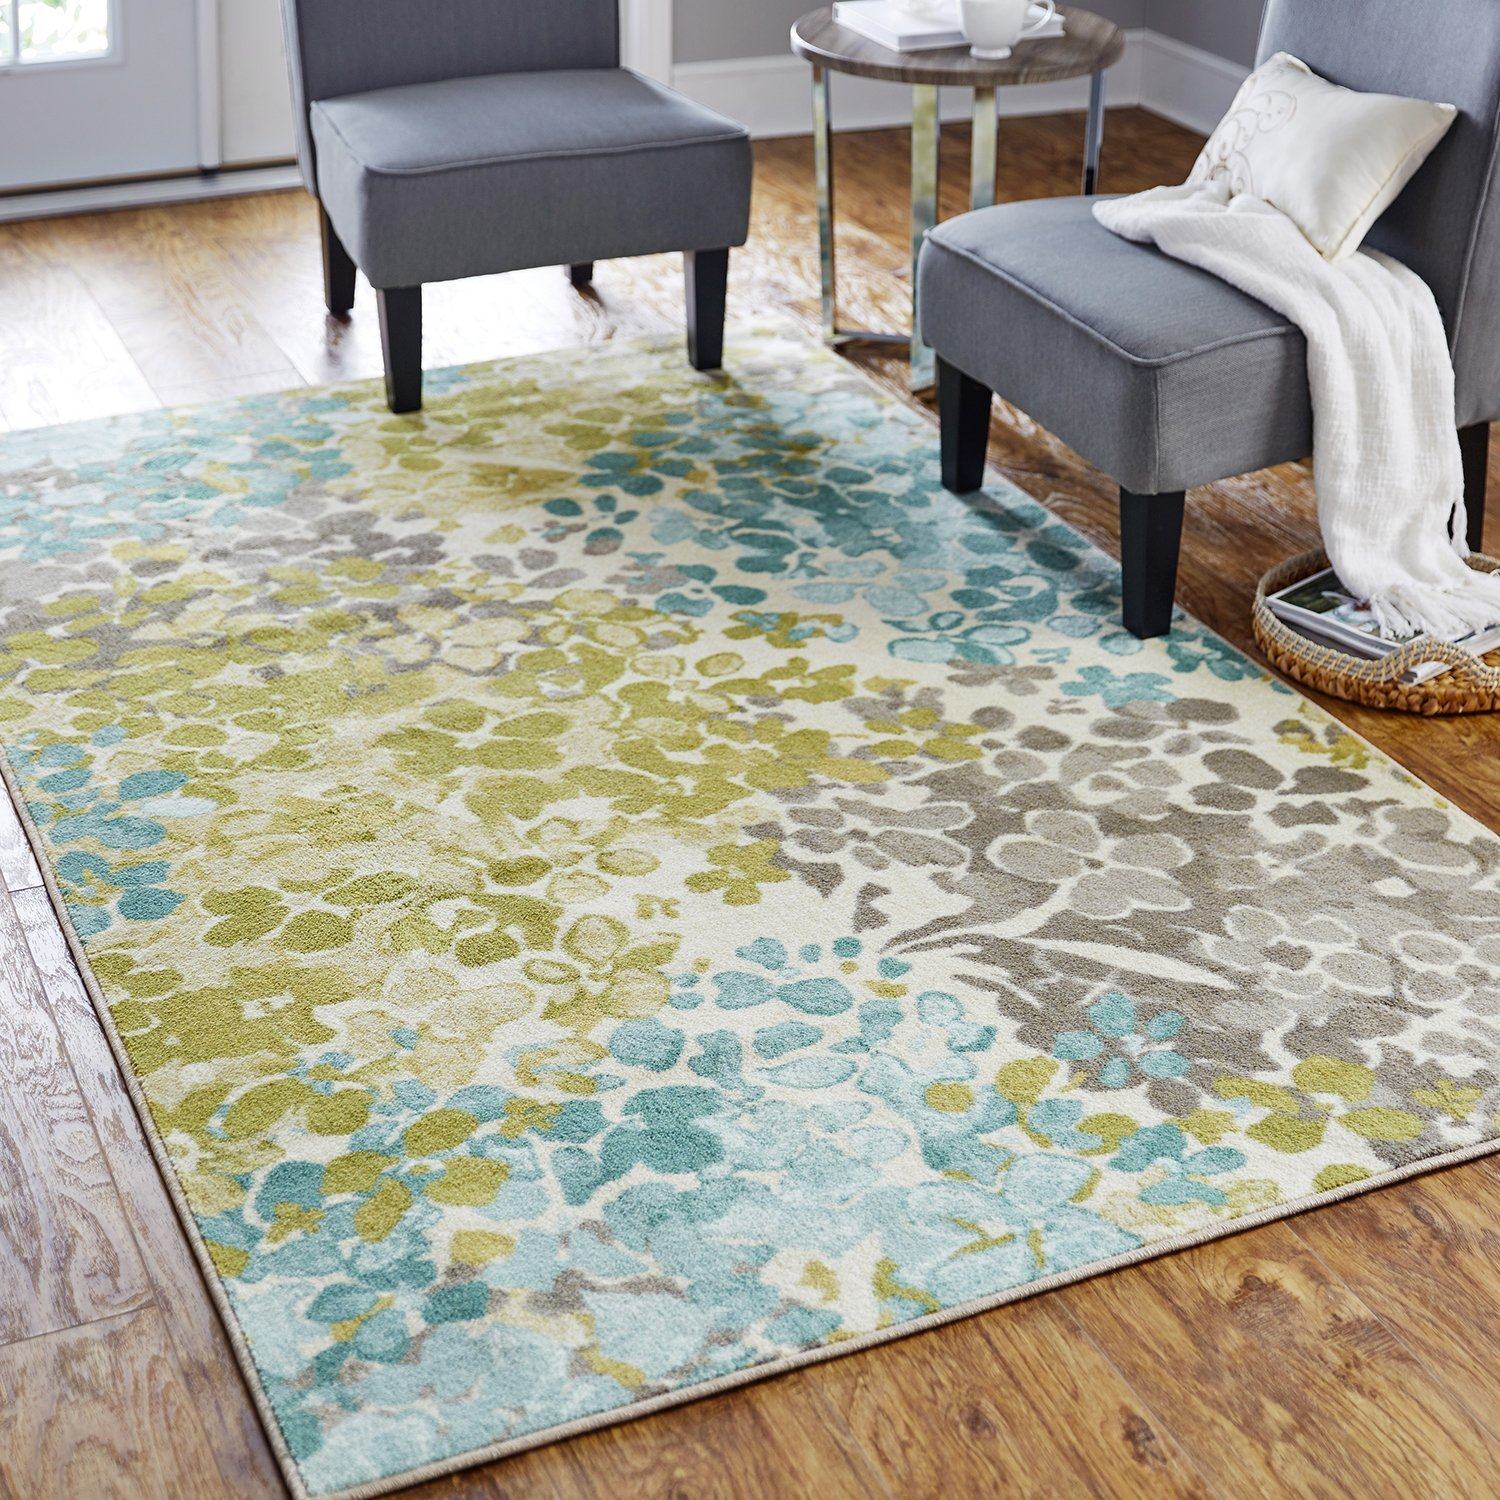 Mohawk Home Aurora Radiance Abstract Floral Printed Area Rug, 5'x8',Aqua Multicolor